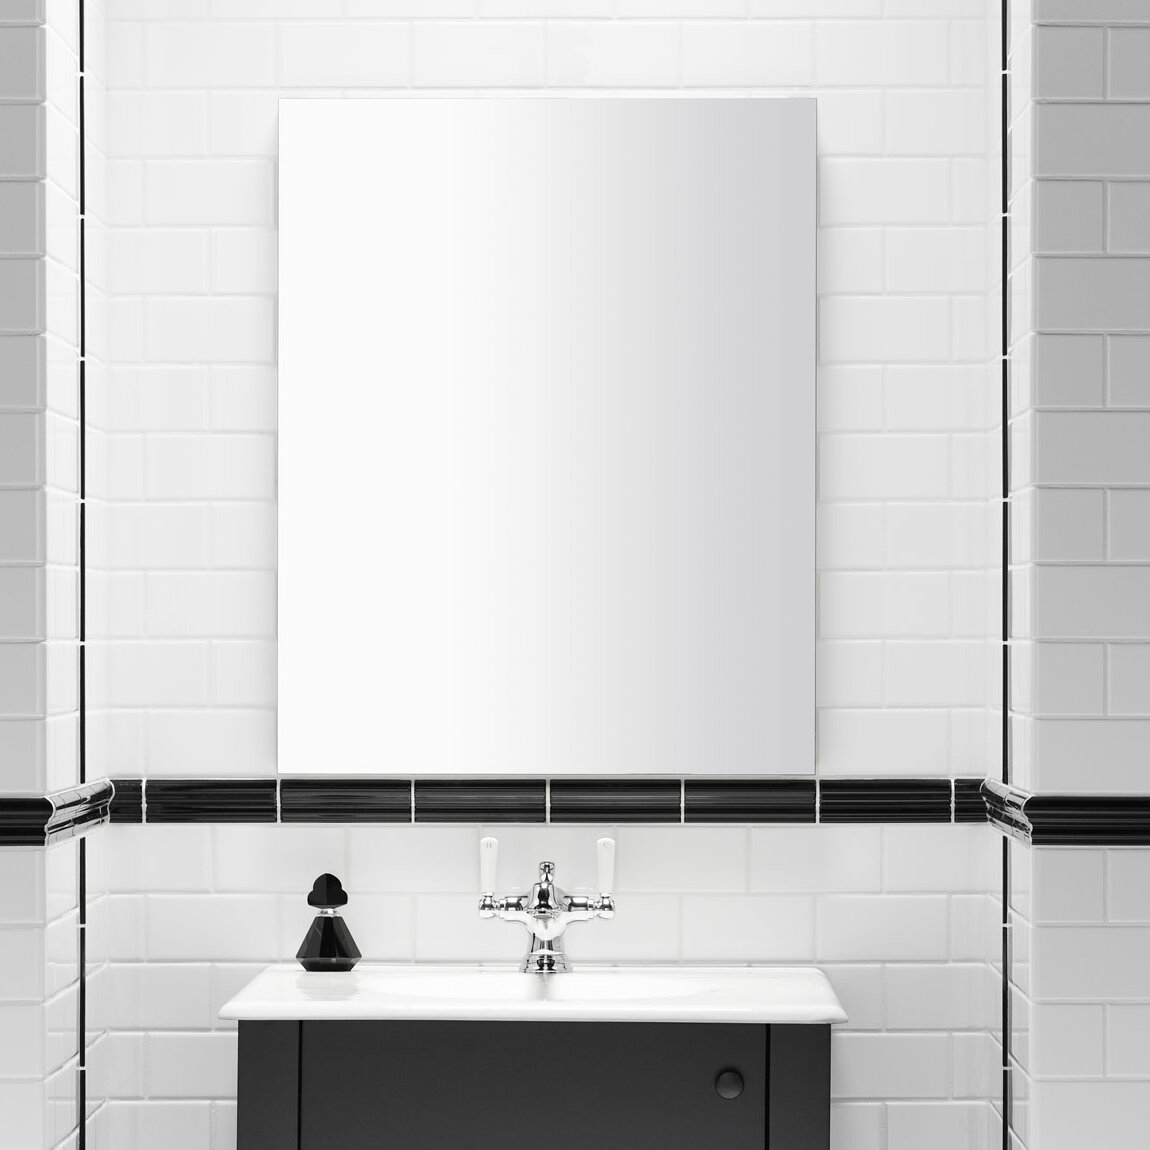 K 99007 Na Kohler Verdera 24 X 30 Medicine Cabinet With Adjule Magnifying Mirror Reviews Wayfair